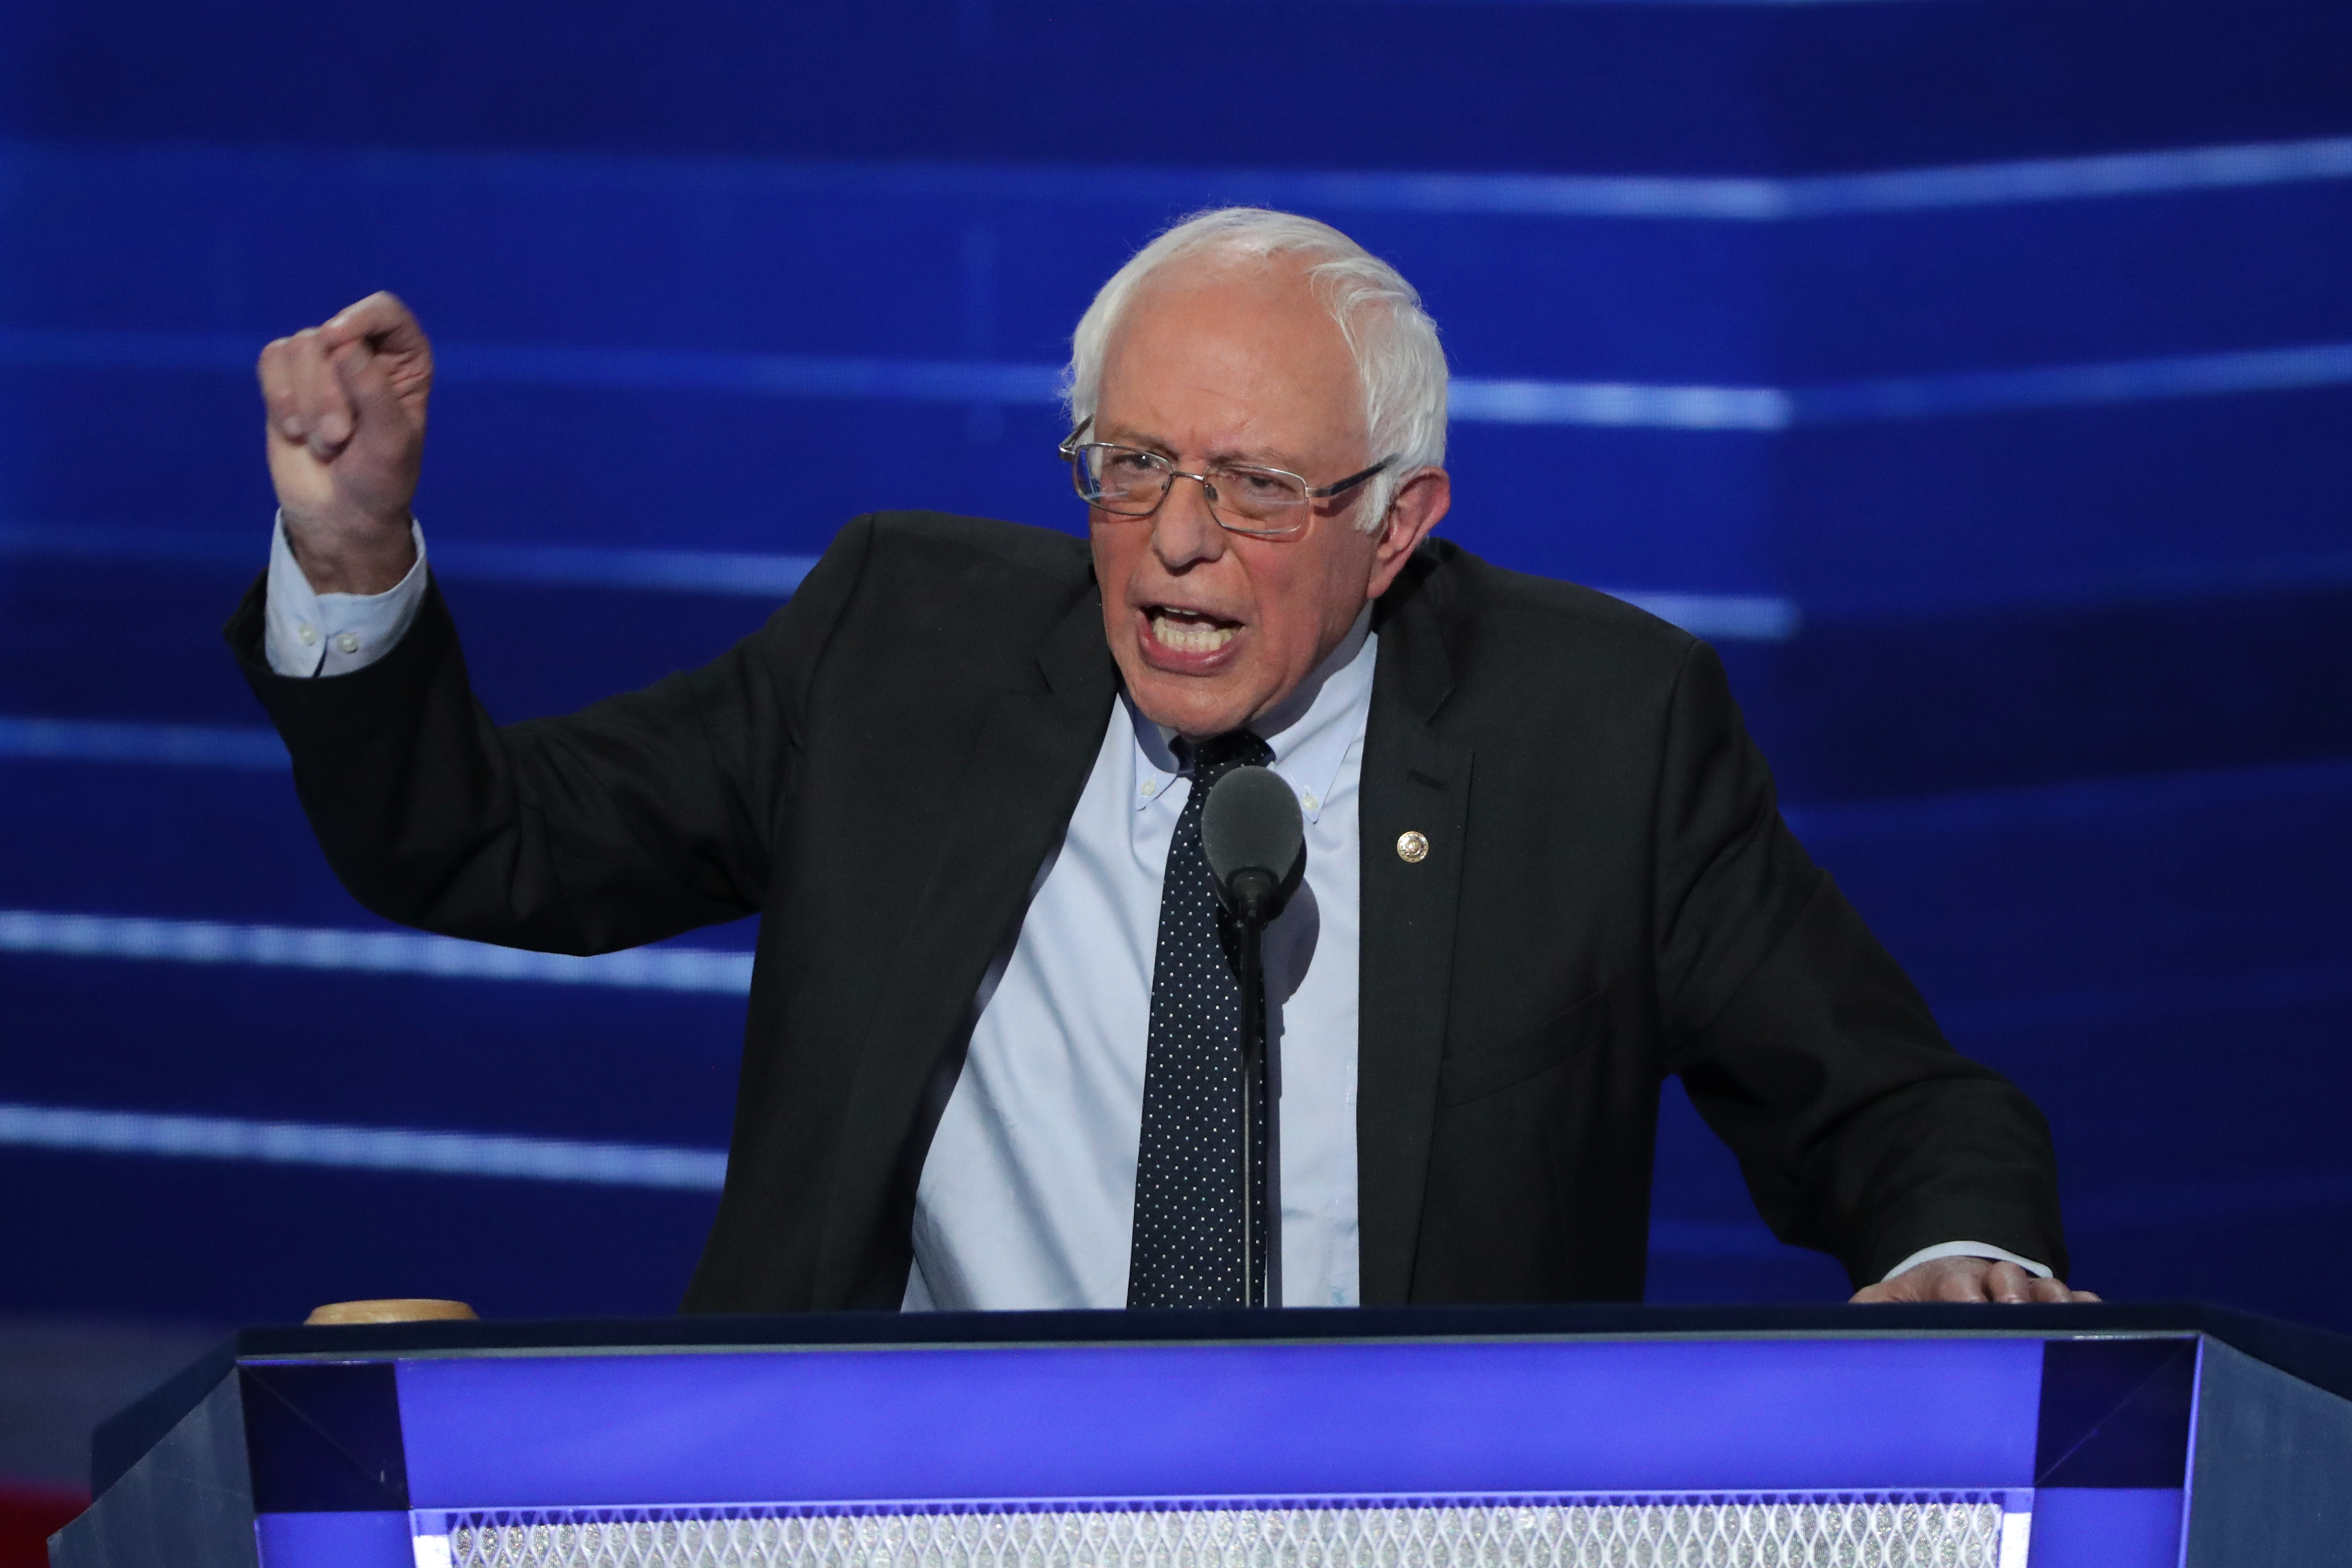 Sen. Bernie Sanders delivers remarks on the first day of the Democratic National Convention at the Wells Fargo Center, July 25, 2016 in Philadelphia, Pennsylvania.